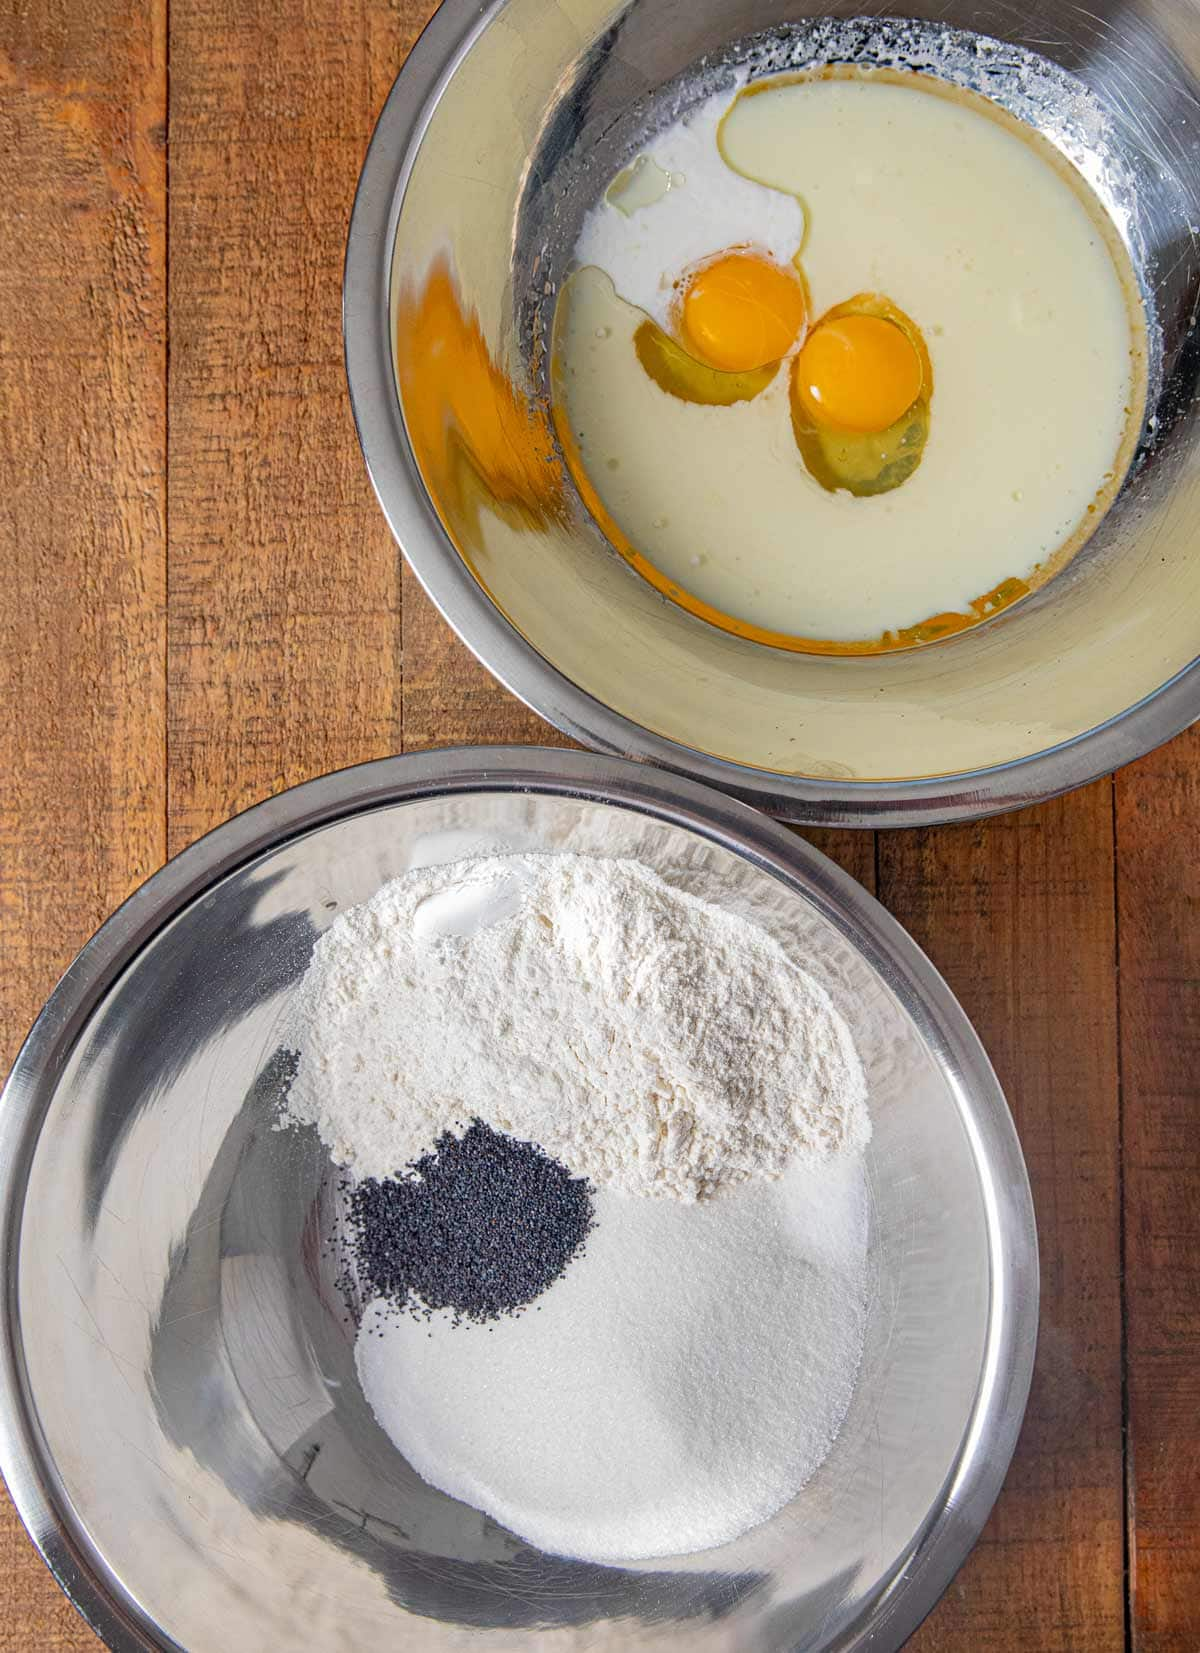 Poppy Seed Muffins ingredients in bowls